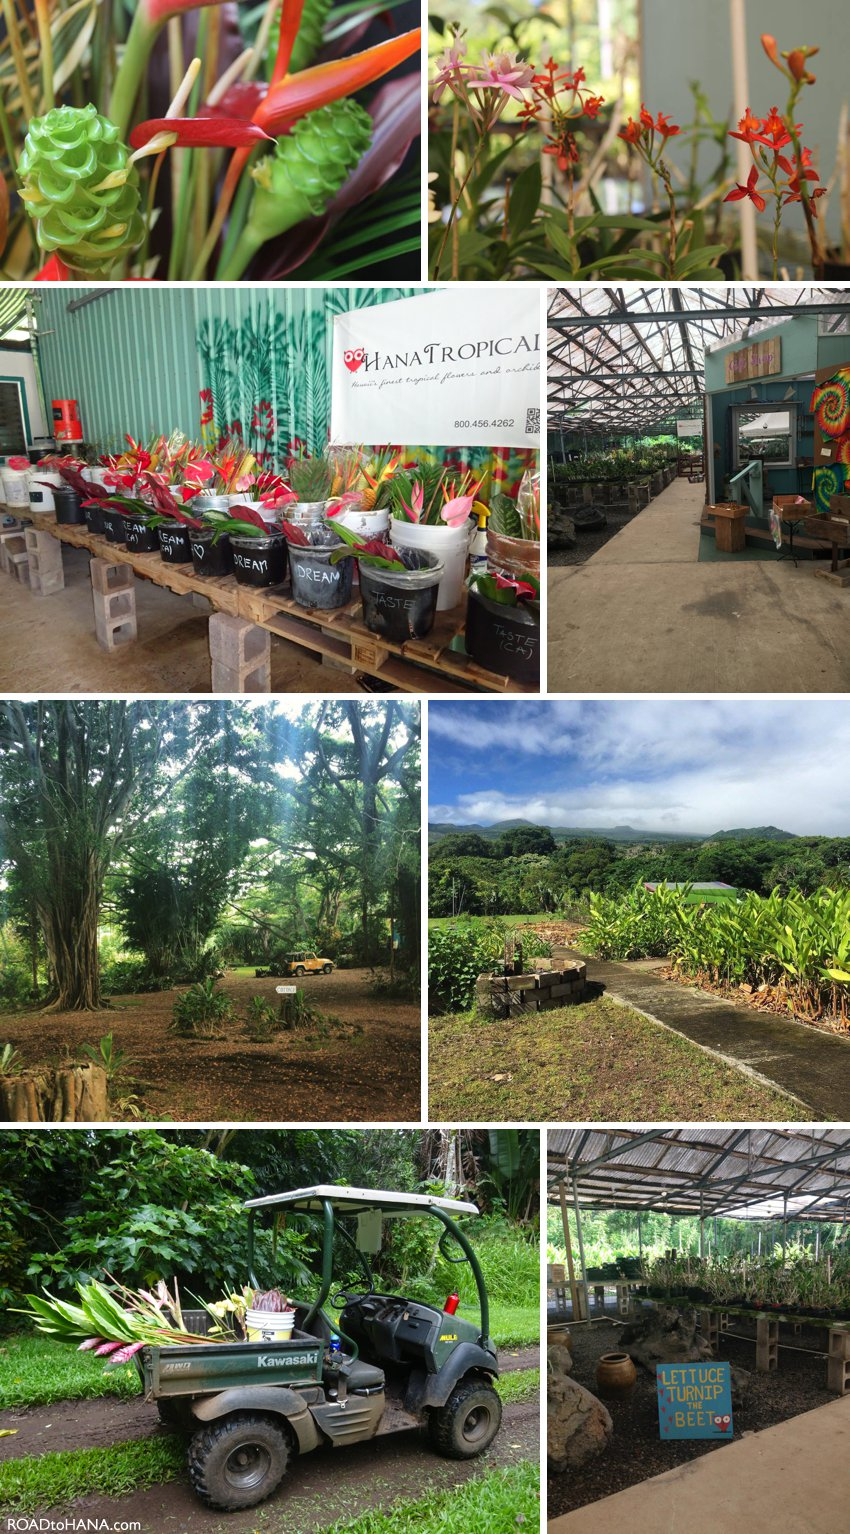 Hana Tropicals Farm